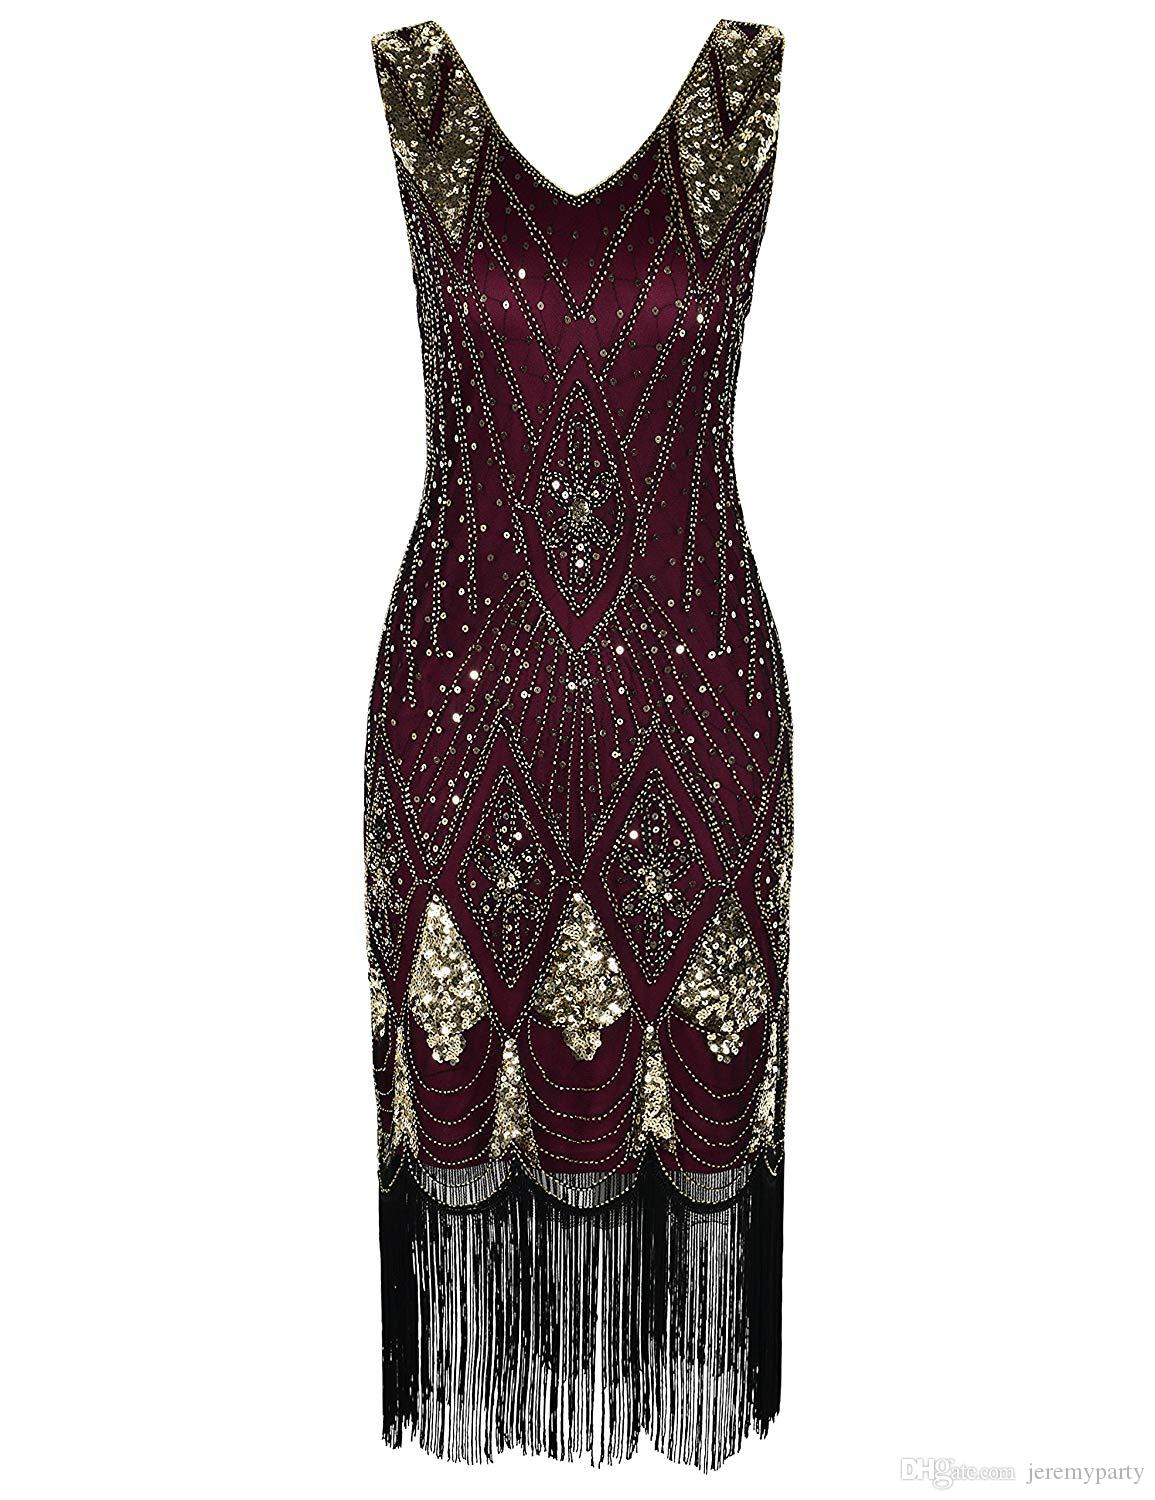 481fc714 2019 QUALITY Women 1920s Great Gatsby Cocktail Sequin Art Deco Flapper  Evening Dress Beads Fringed Party Costume From Jeremyparty, $29.94 |  DHgate.Com